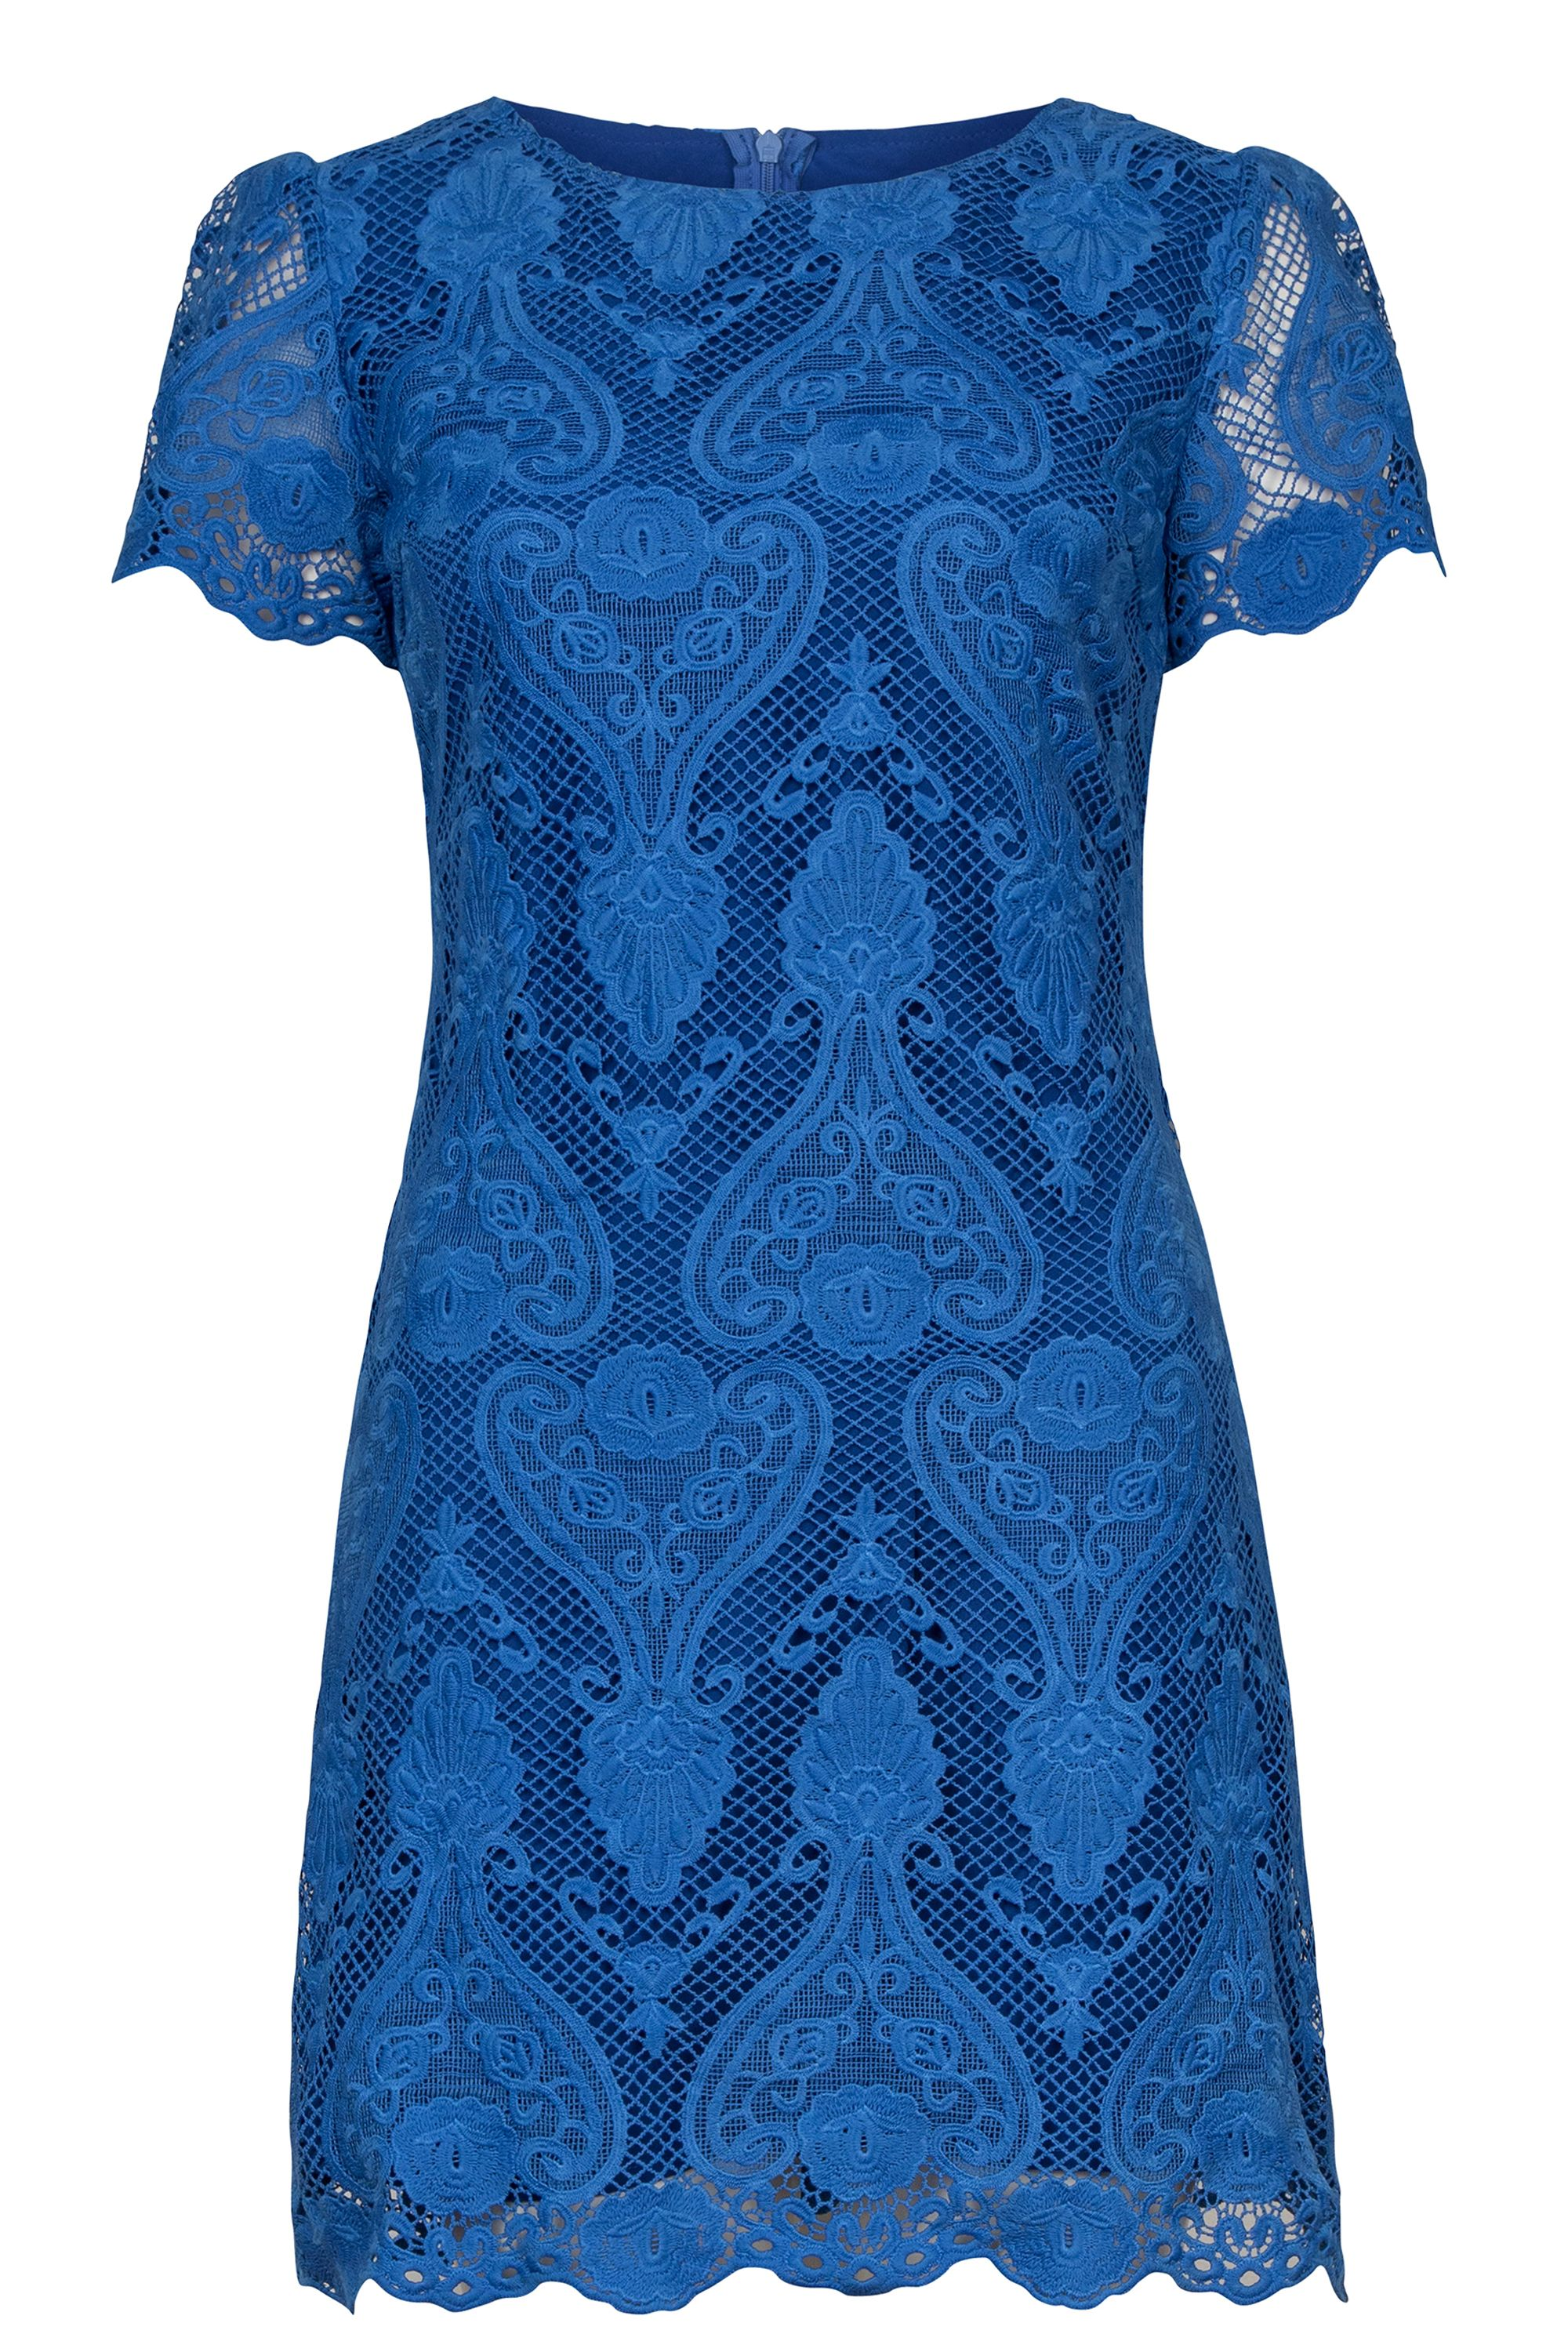 Wolf & Whistle Wolf & Whistle Crochet Lace Shift Dress, Blue